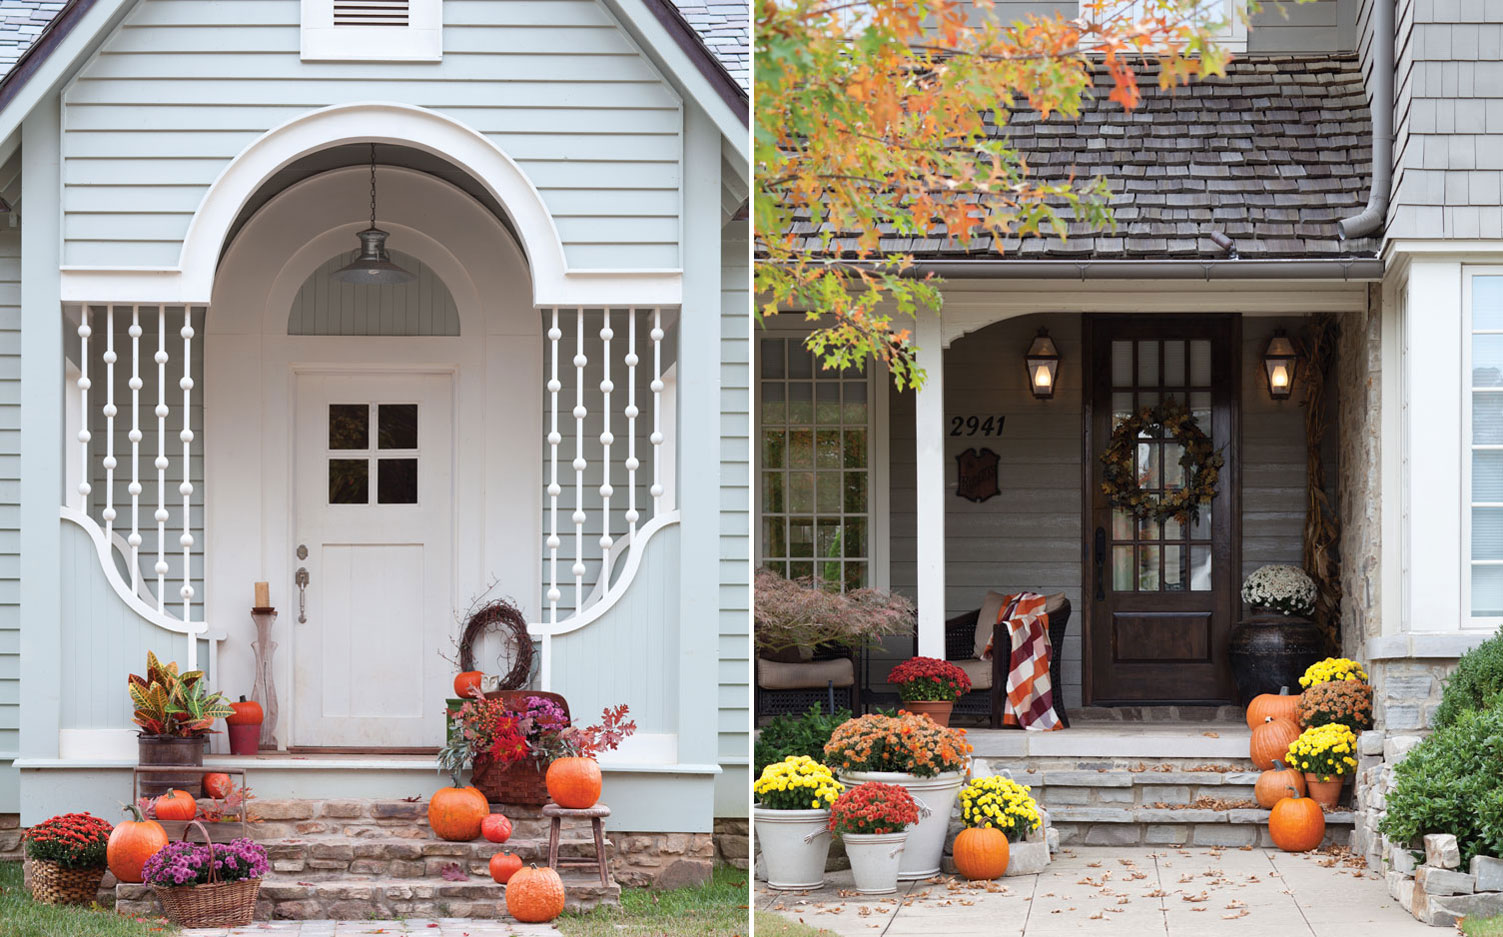 A picture of pumpkins on porches